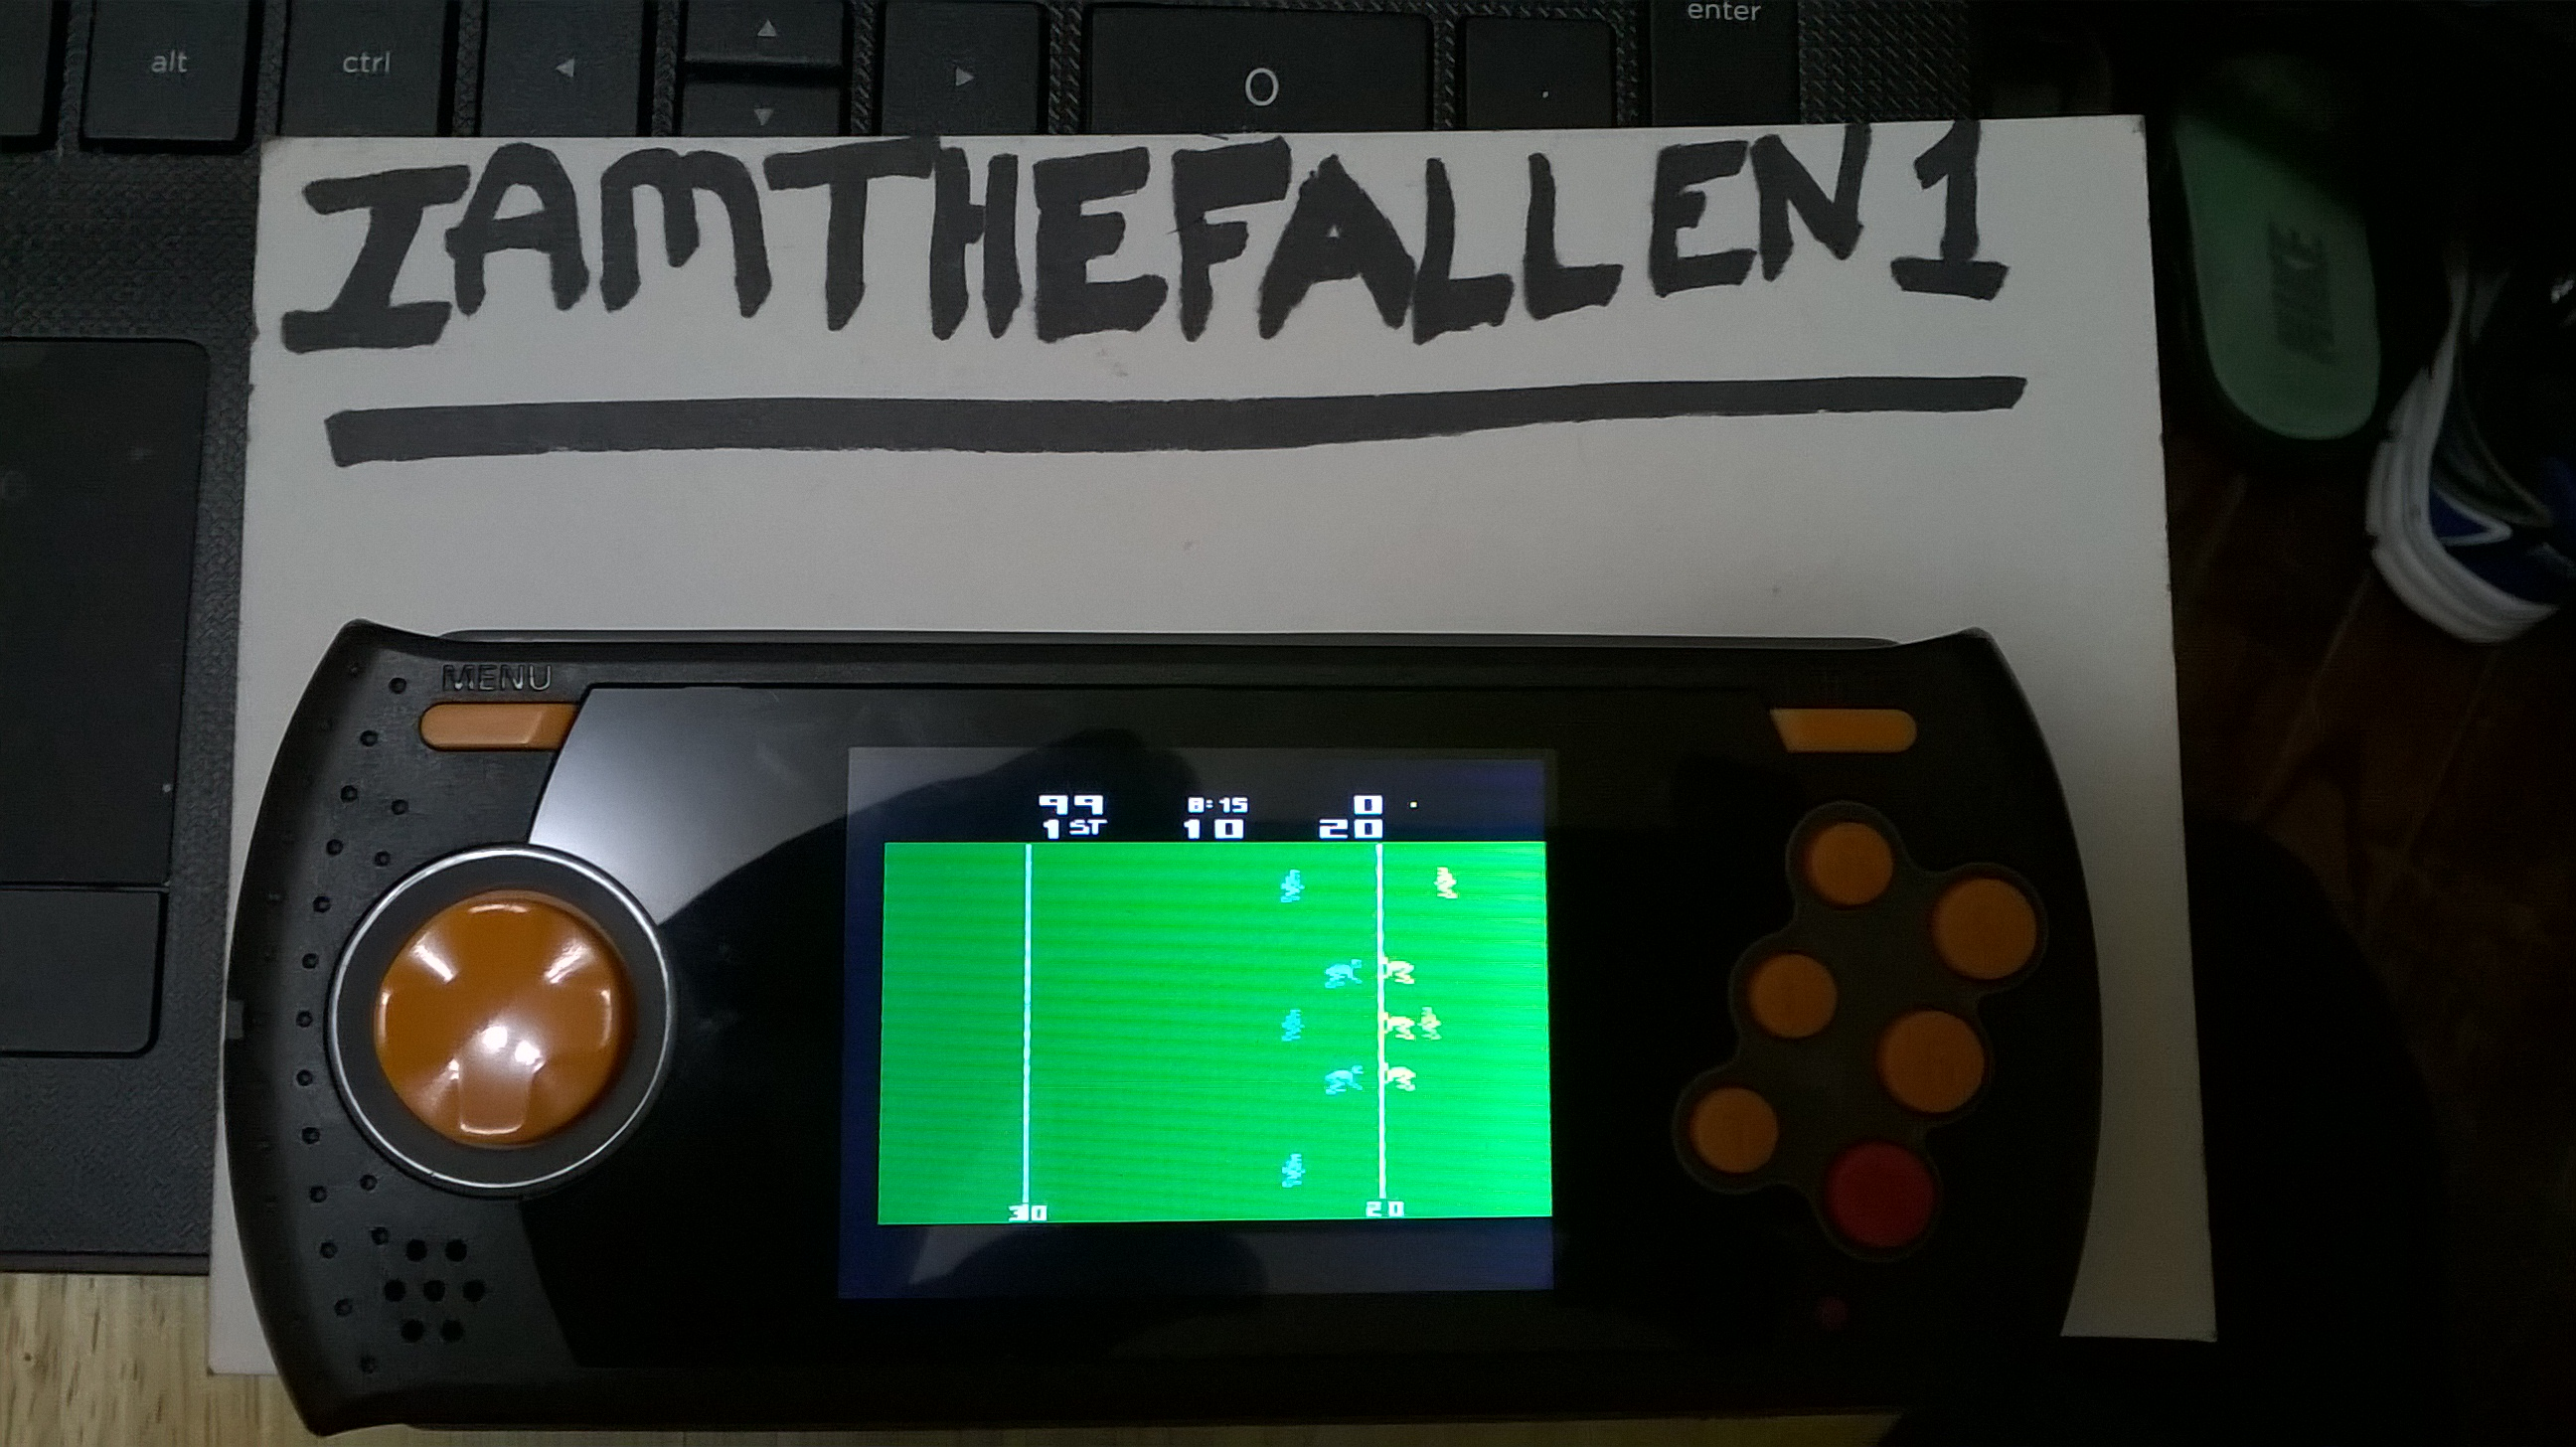 iamthefallen1: RealSports Football [Point Difference] (Atari 2600 Emulated) 99 points on 2018-02-13 16:56:36